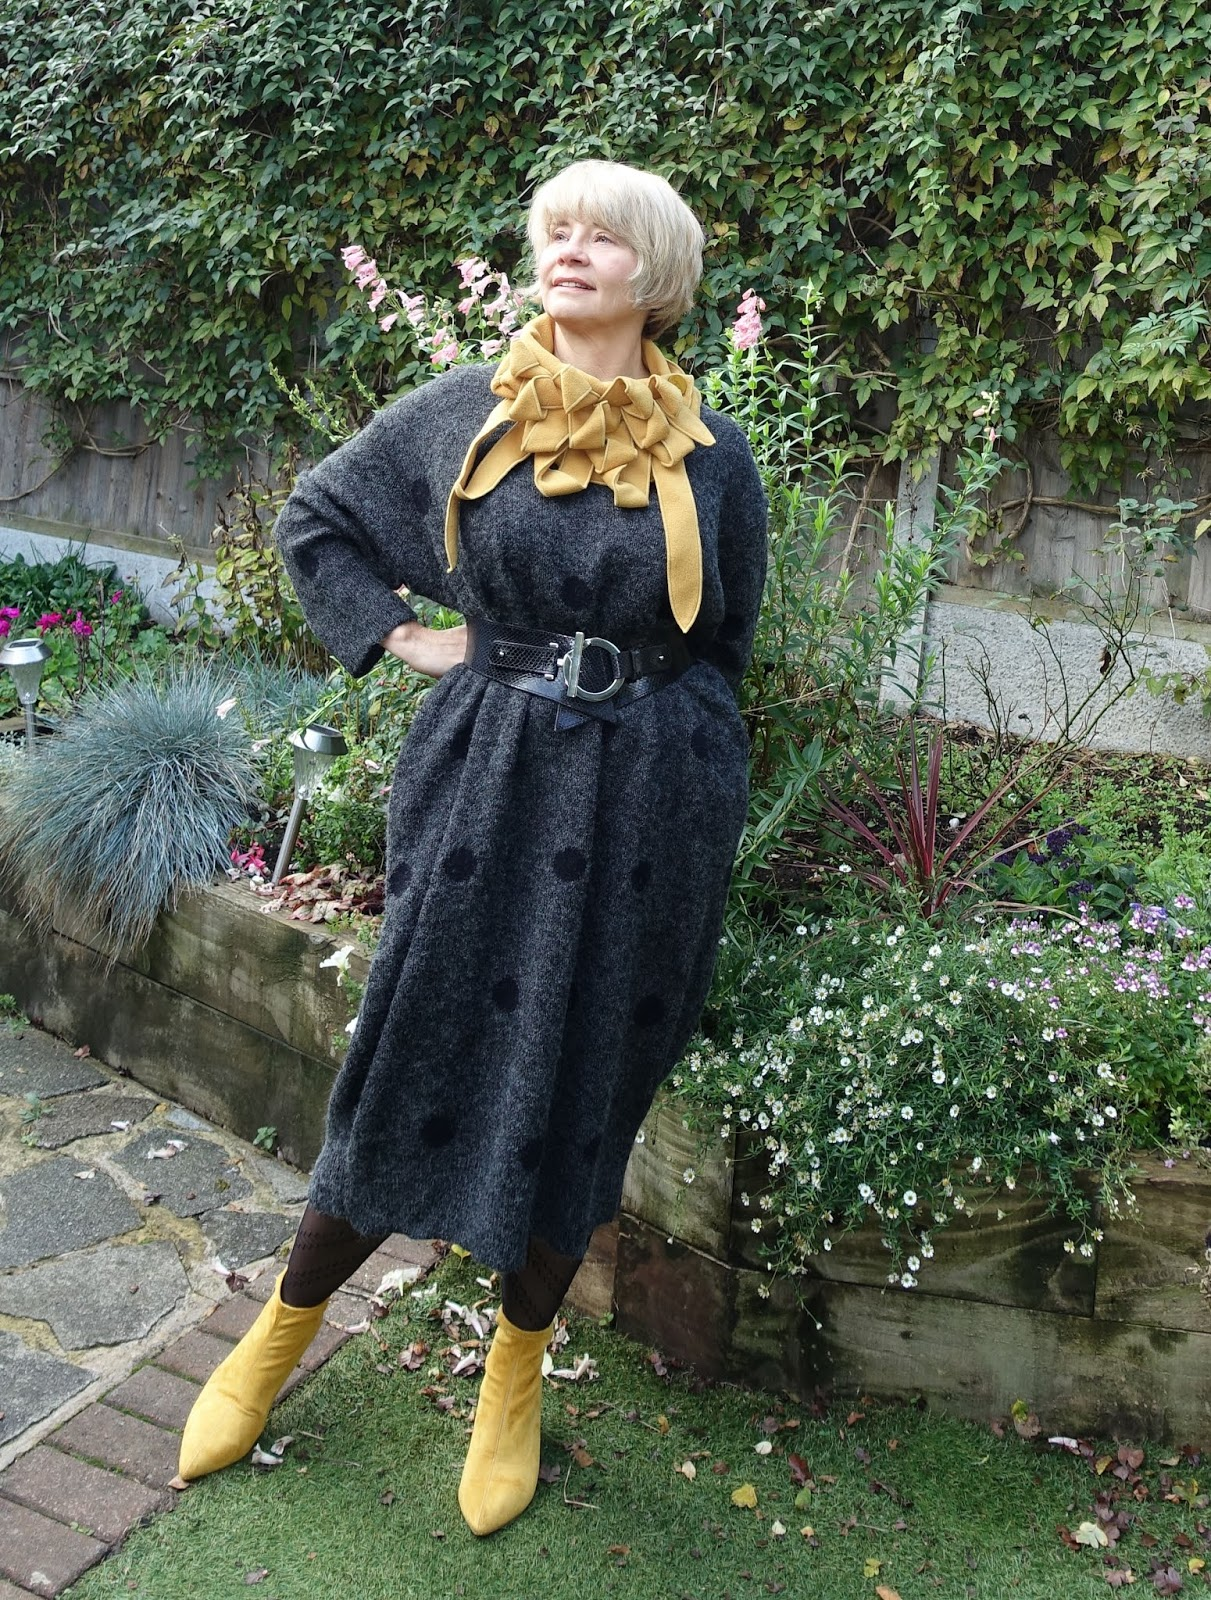 Mustard accessories - a dramatic collar and sock ankle boots - add some drama to a grey wool sweater dress from Eva Trends. An idea outfit for the over 50s to wear in winter, either to work or out socialising.